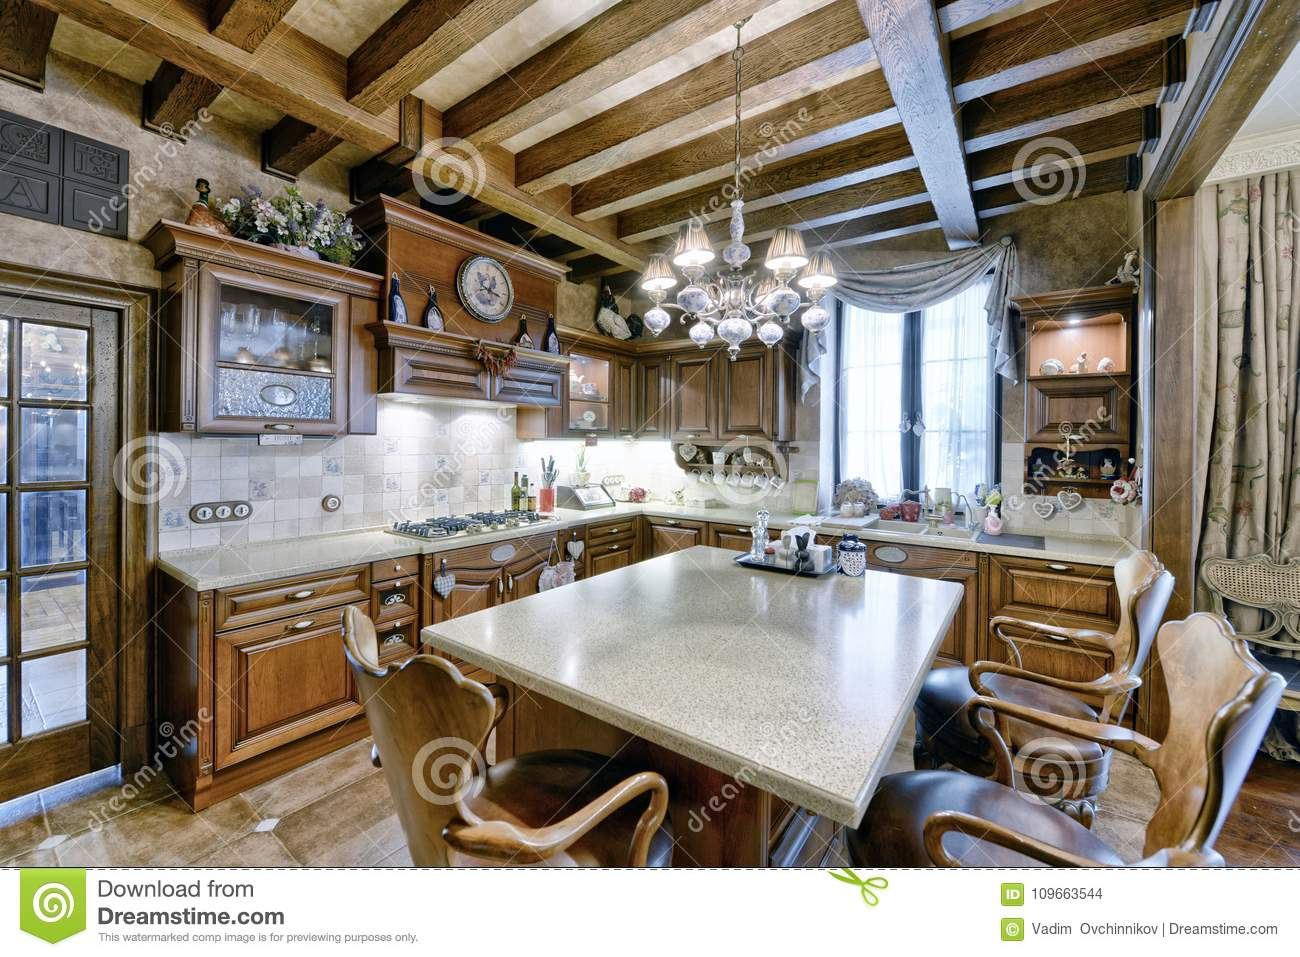 Kitchen design in wooden home interior